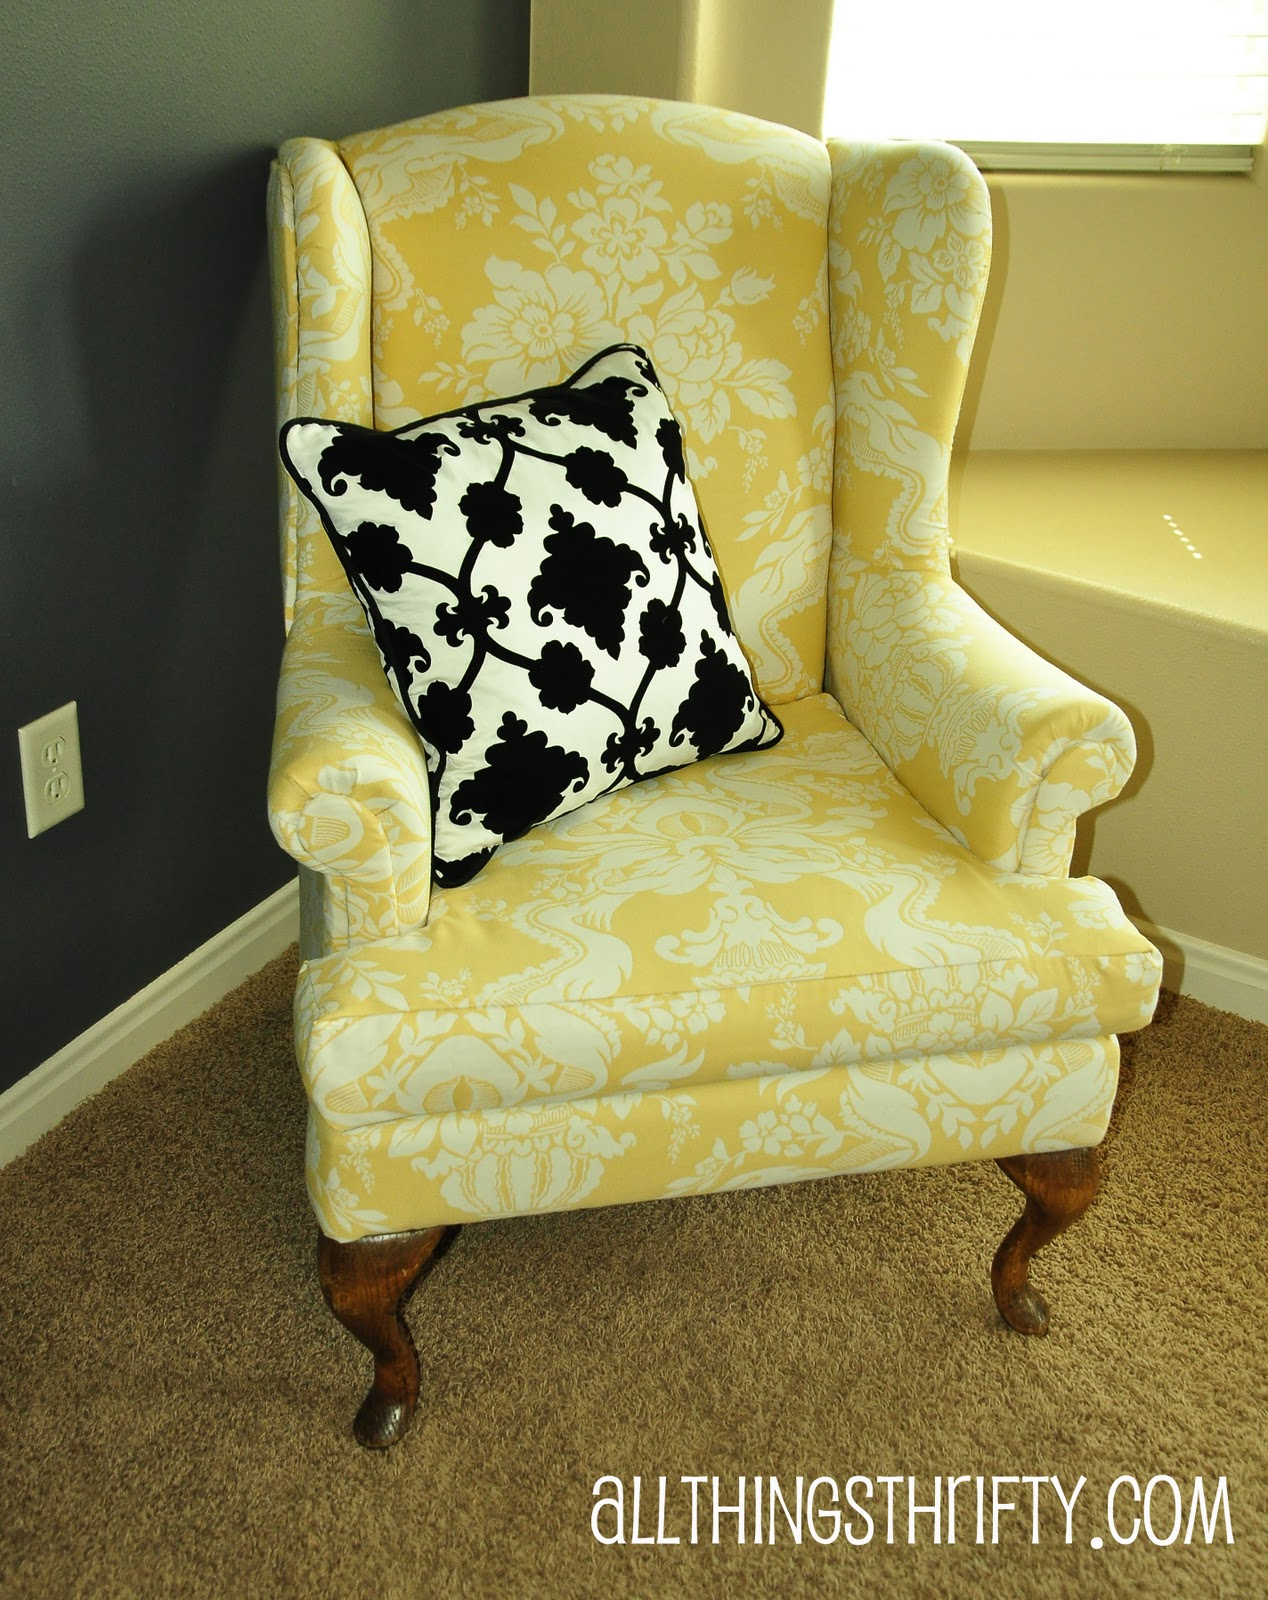 handmade chair an to upholstered after arm reupholster make how design and hgtv celebrate couch